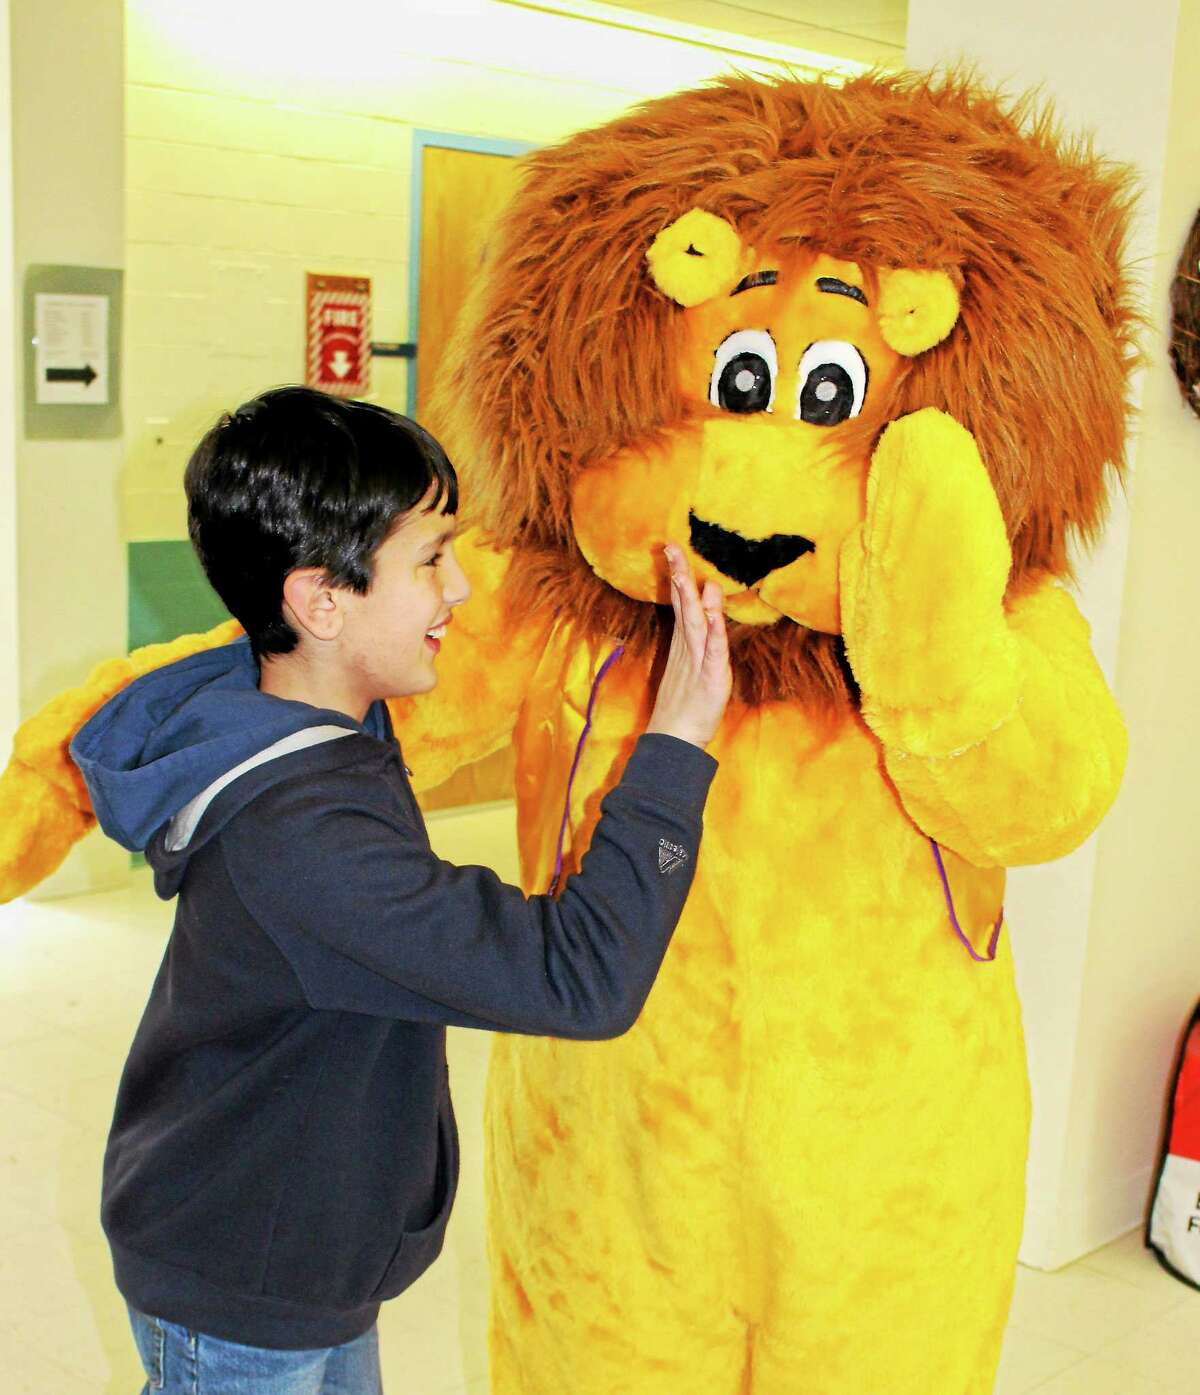 Student Nicholas Criscuolo high-fives Seymour the Lion.